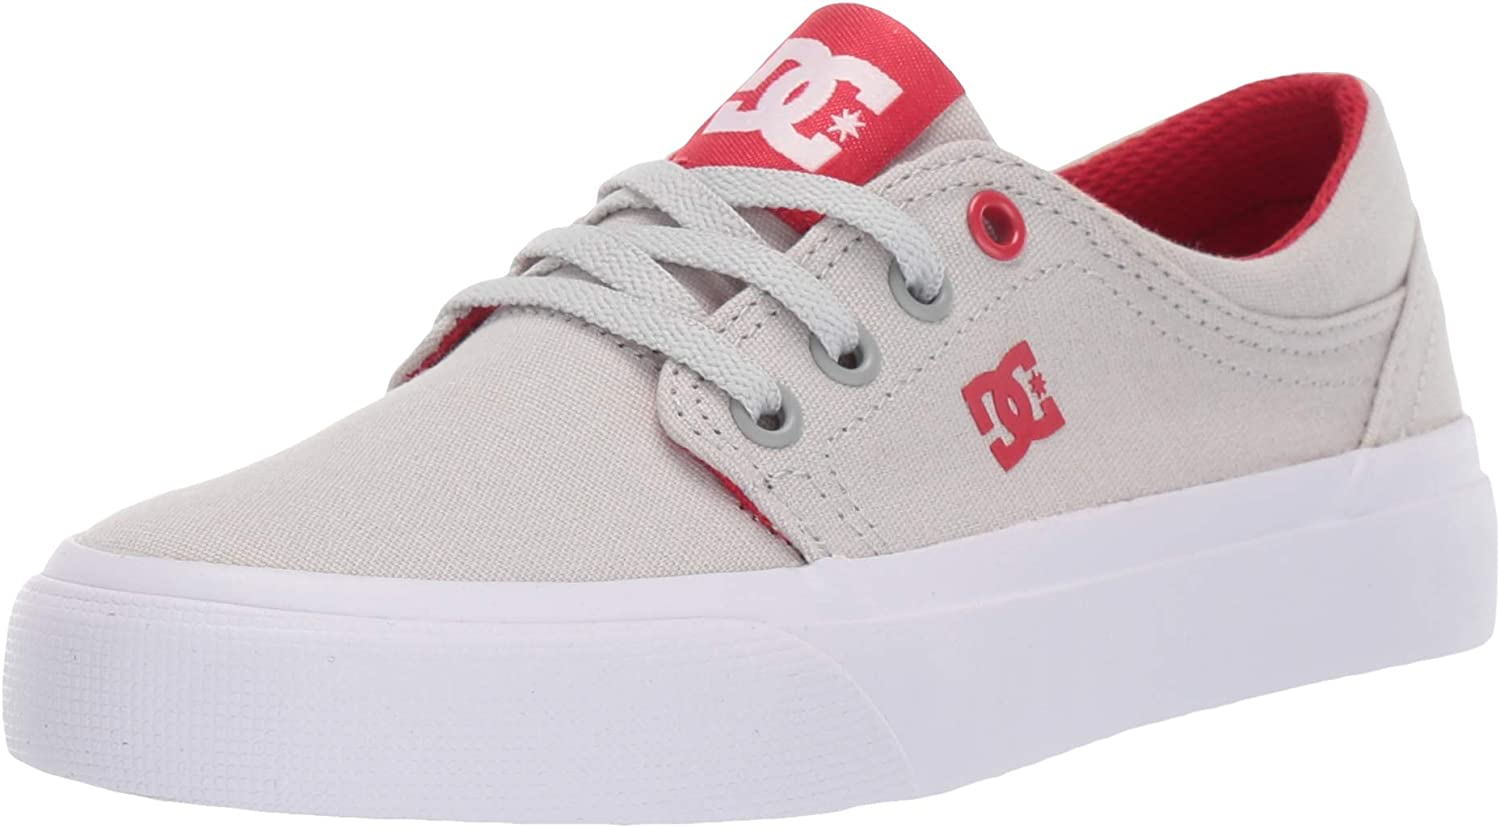 35% OFF DC Unisex-Child Trase Tx Shoe Skate Challenge the lowest price of Japan